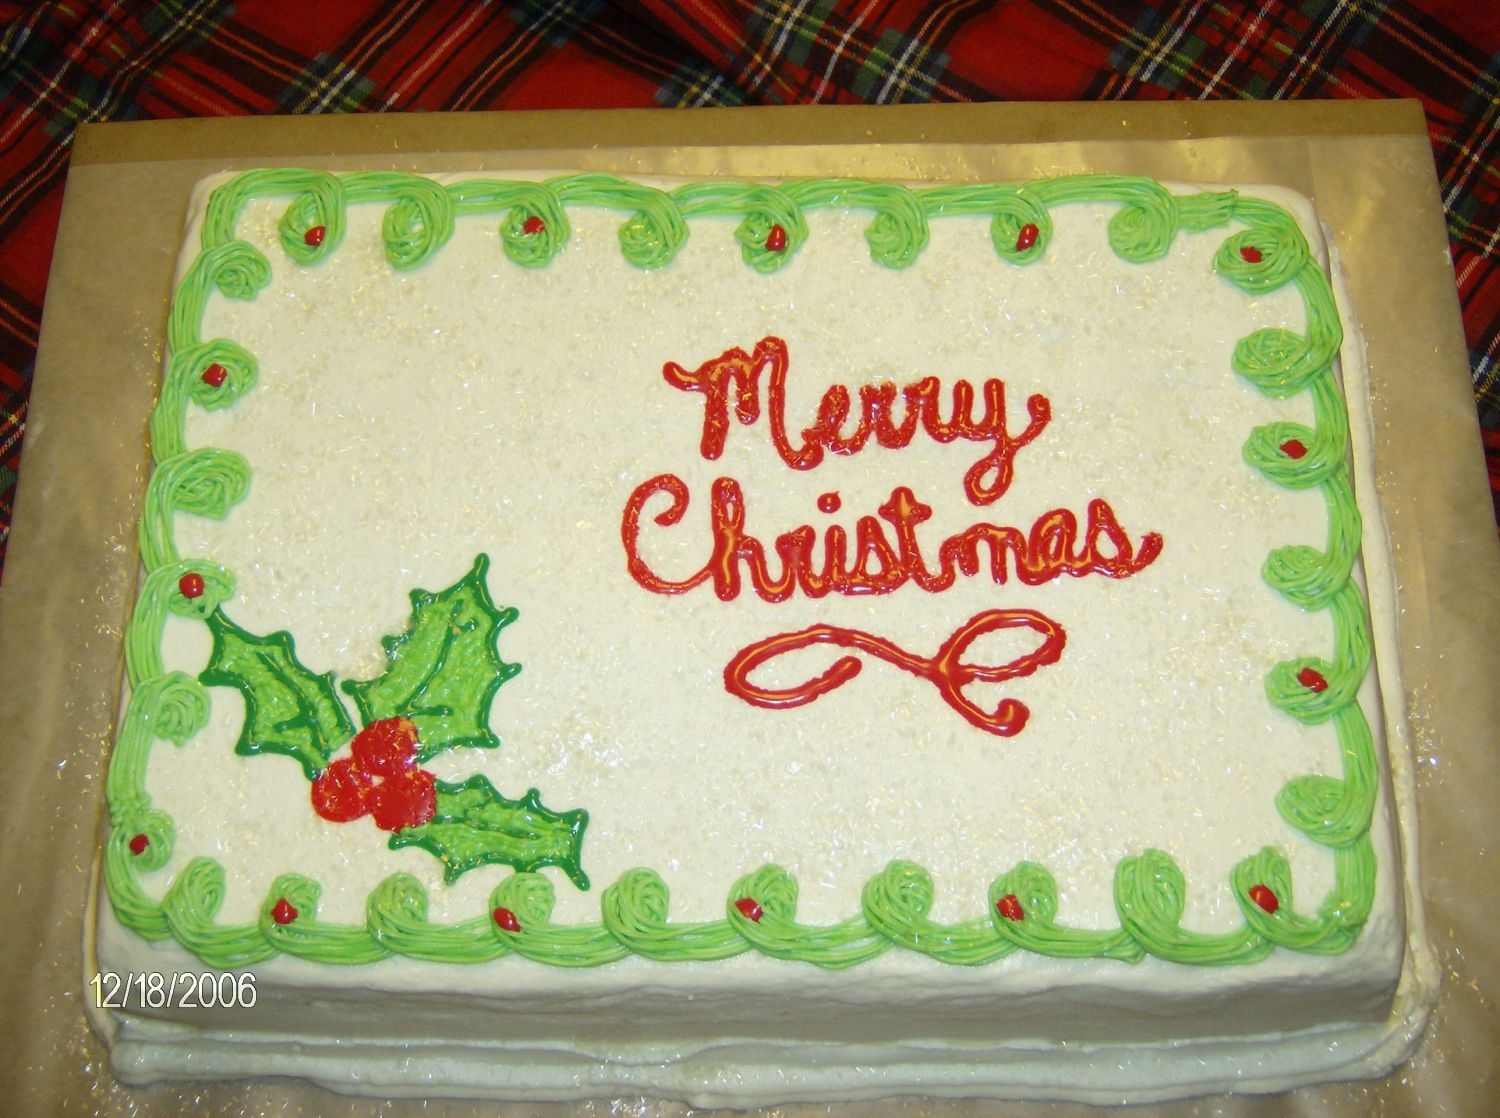 Cake Decorating Classes Tyler Tx : Tyler class party cake Cake Gallery on Cake Central